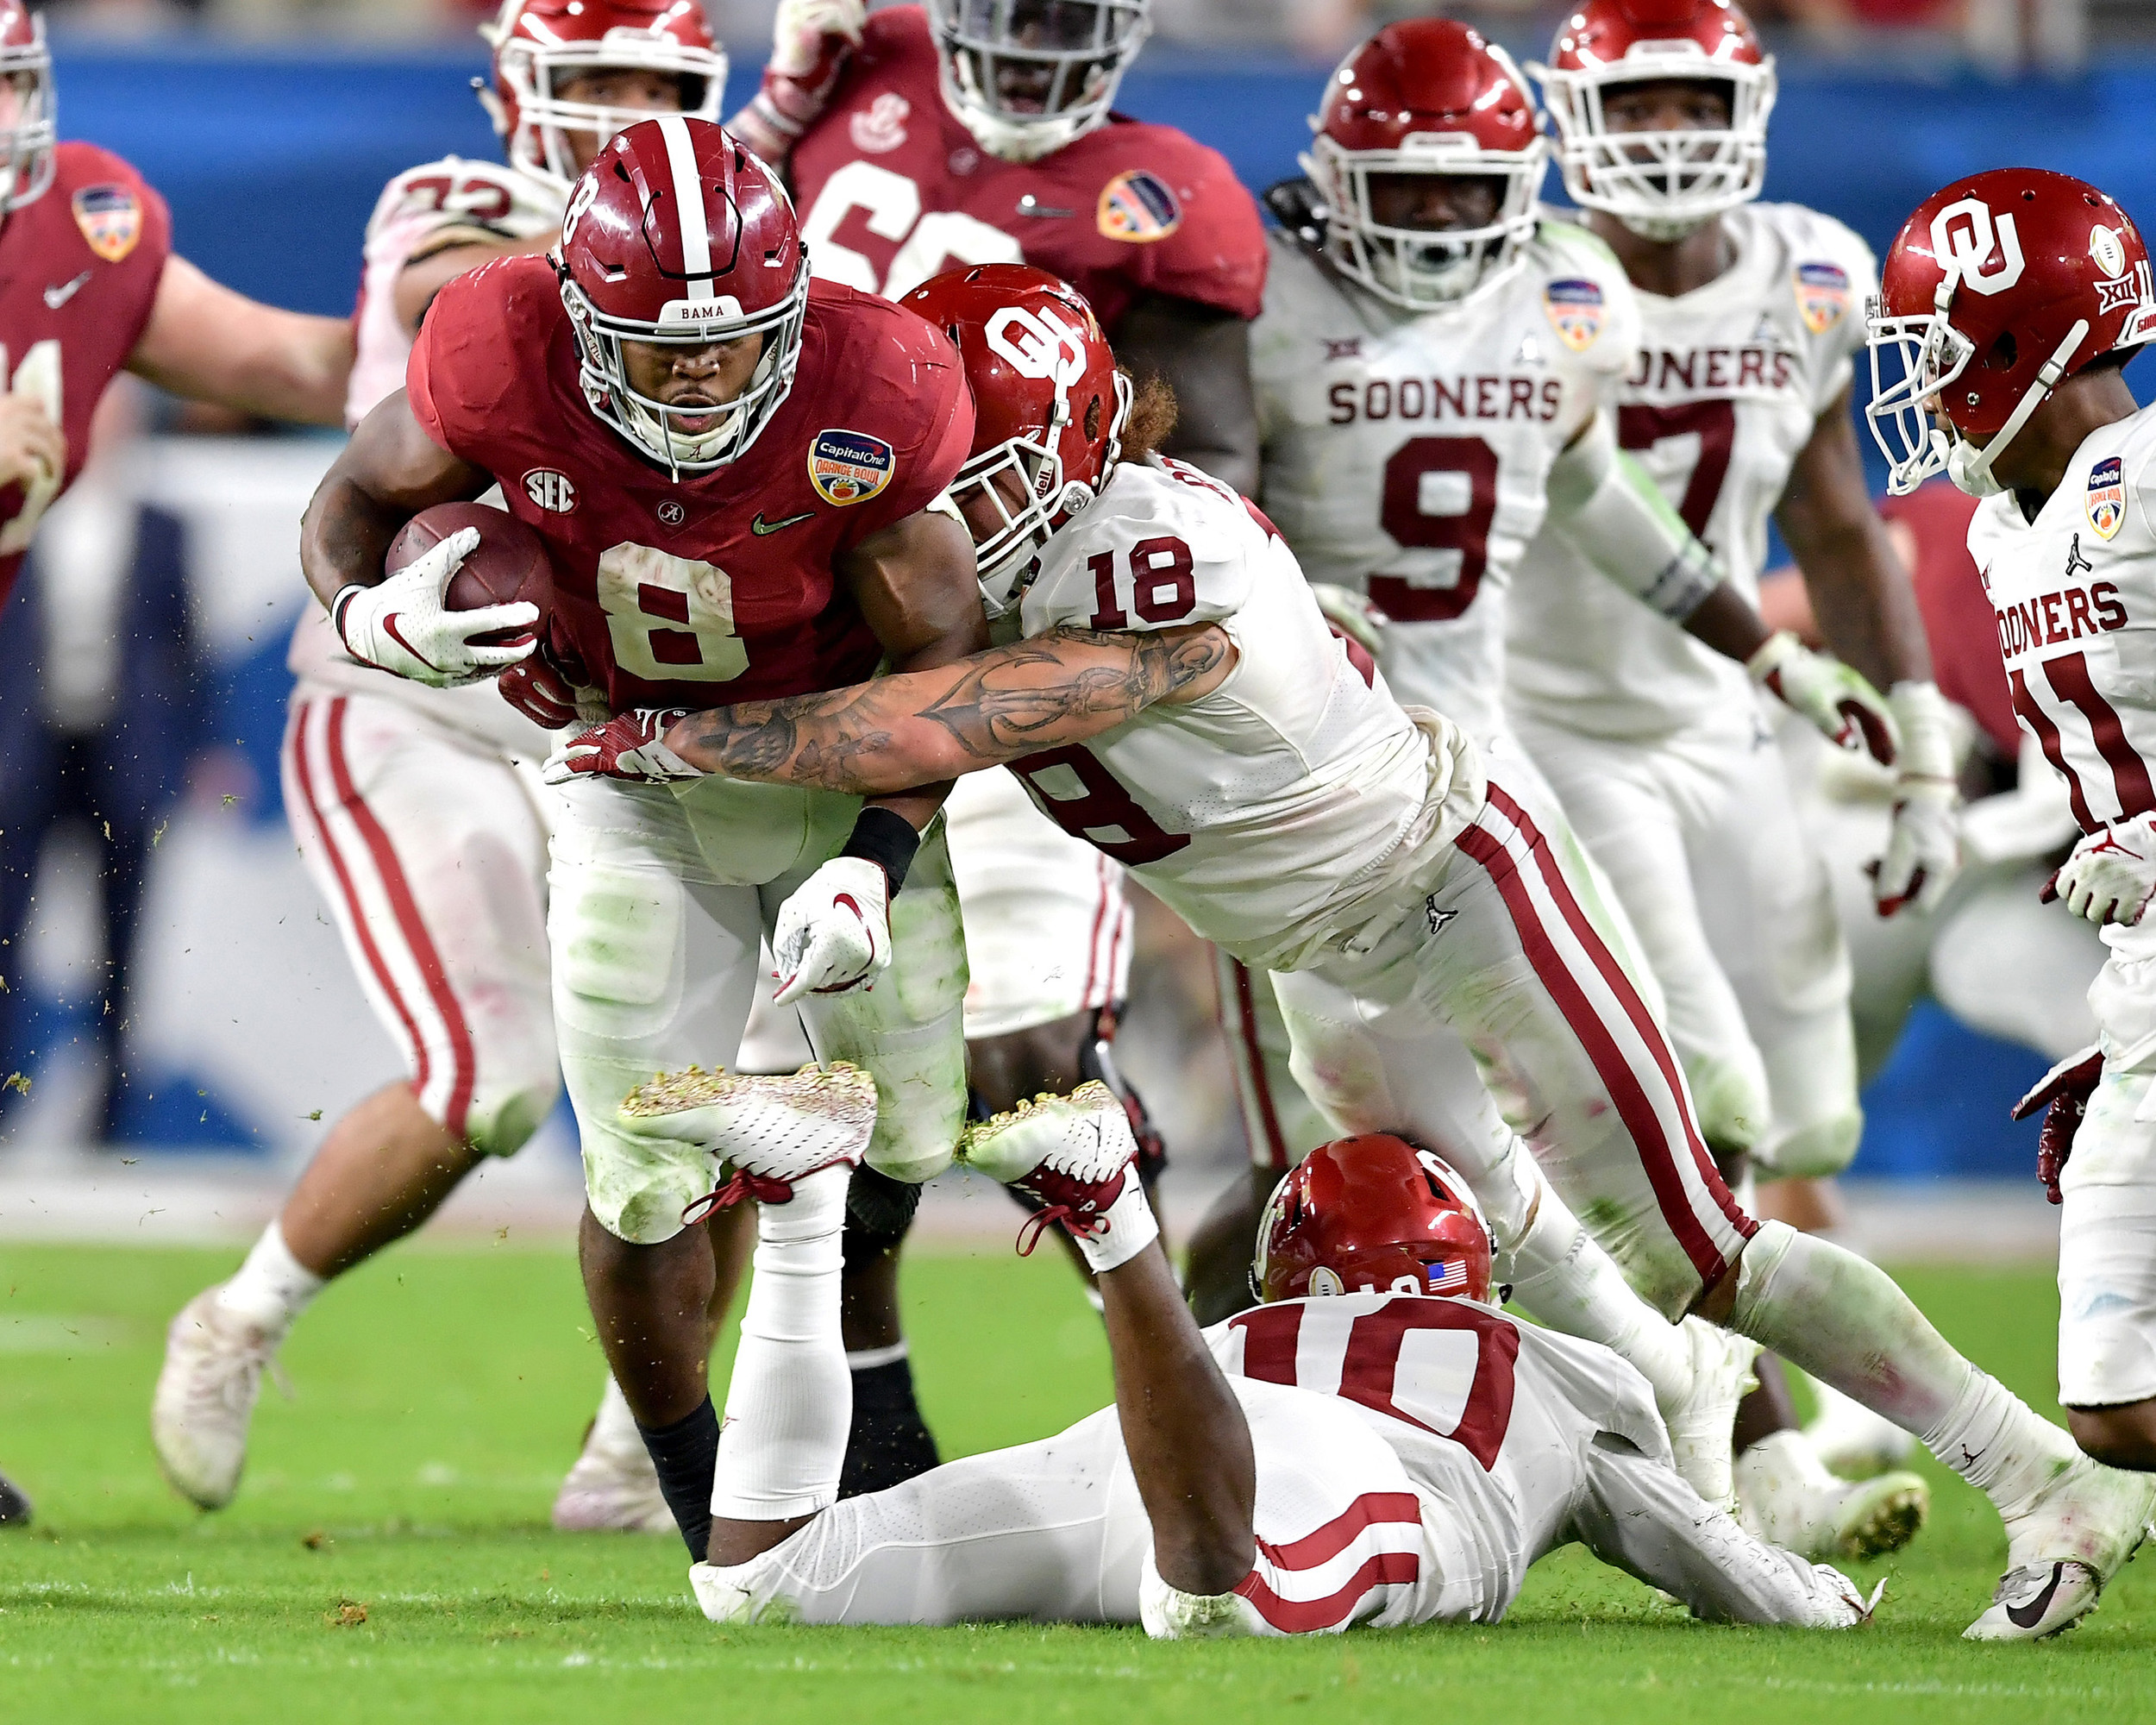 Alabama Crimson Tide running back Josh Jacobs (8) with a carry in the first half of the Capital One Orange Bowl, featuring Alabama and the Oklahoma Sooners, at Hard Rock Stadium in Miami Gardens, Fla., Saturday, Dec. 29, 2018. Alabama wins 45-34. (Photo by Lee Walls)